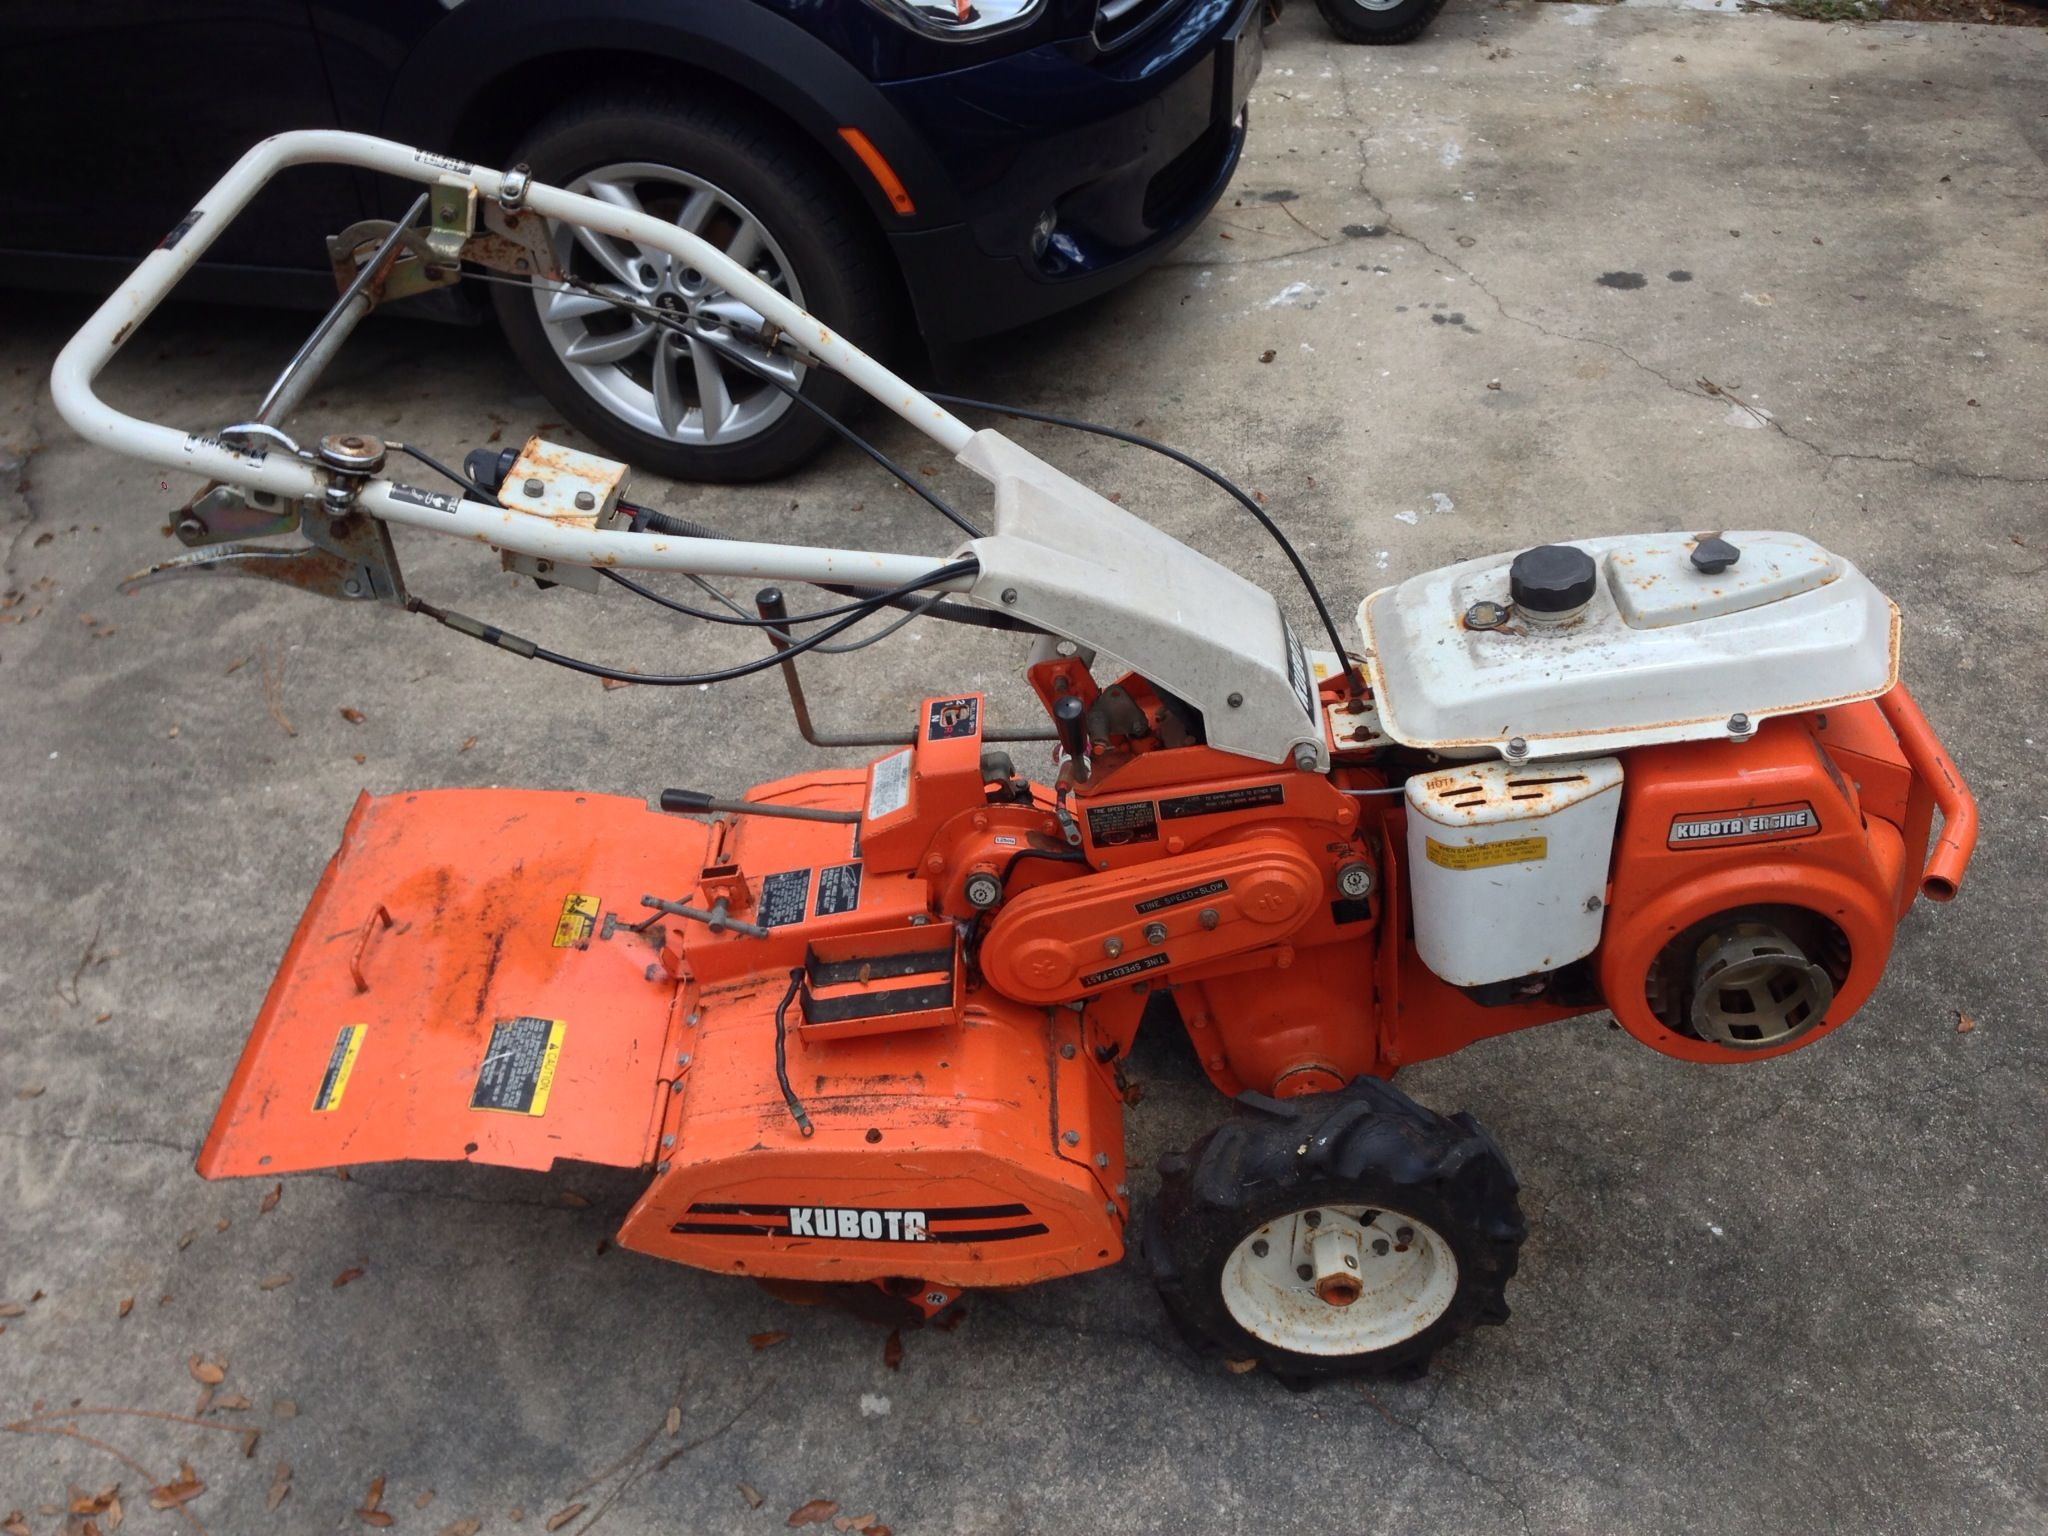 Kubota AT70s for those who wish they had a tractor Craigslist